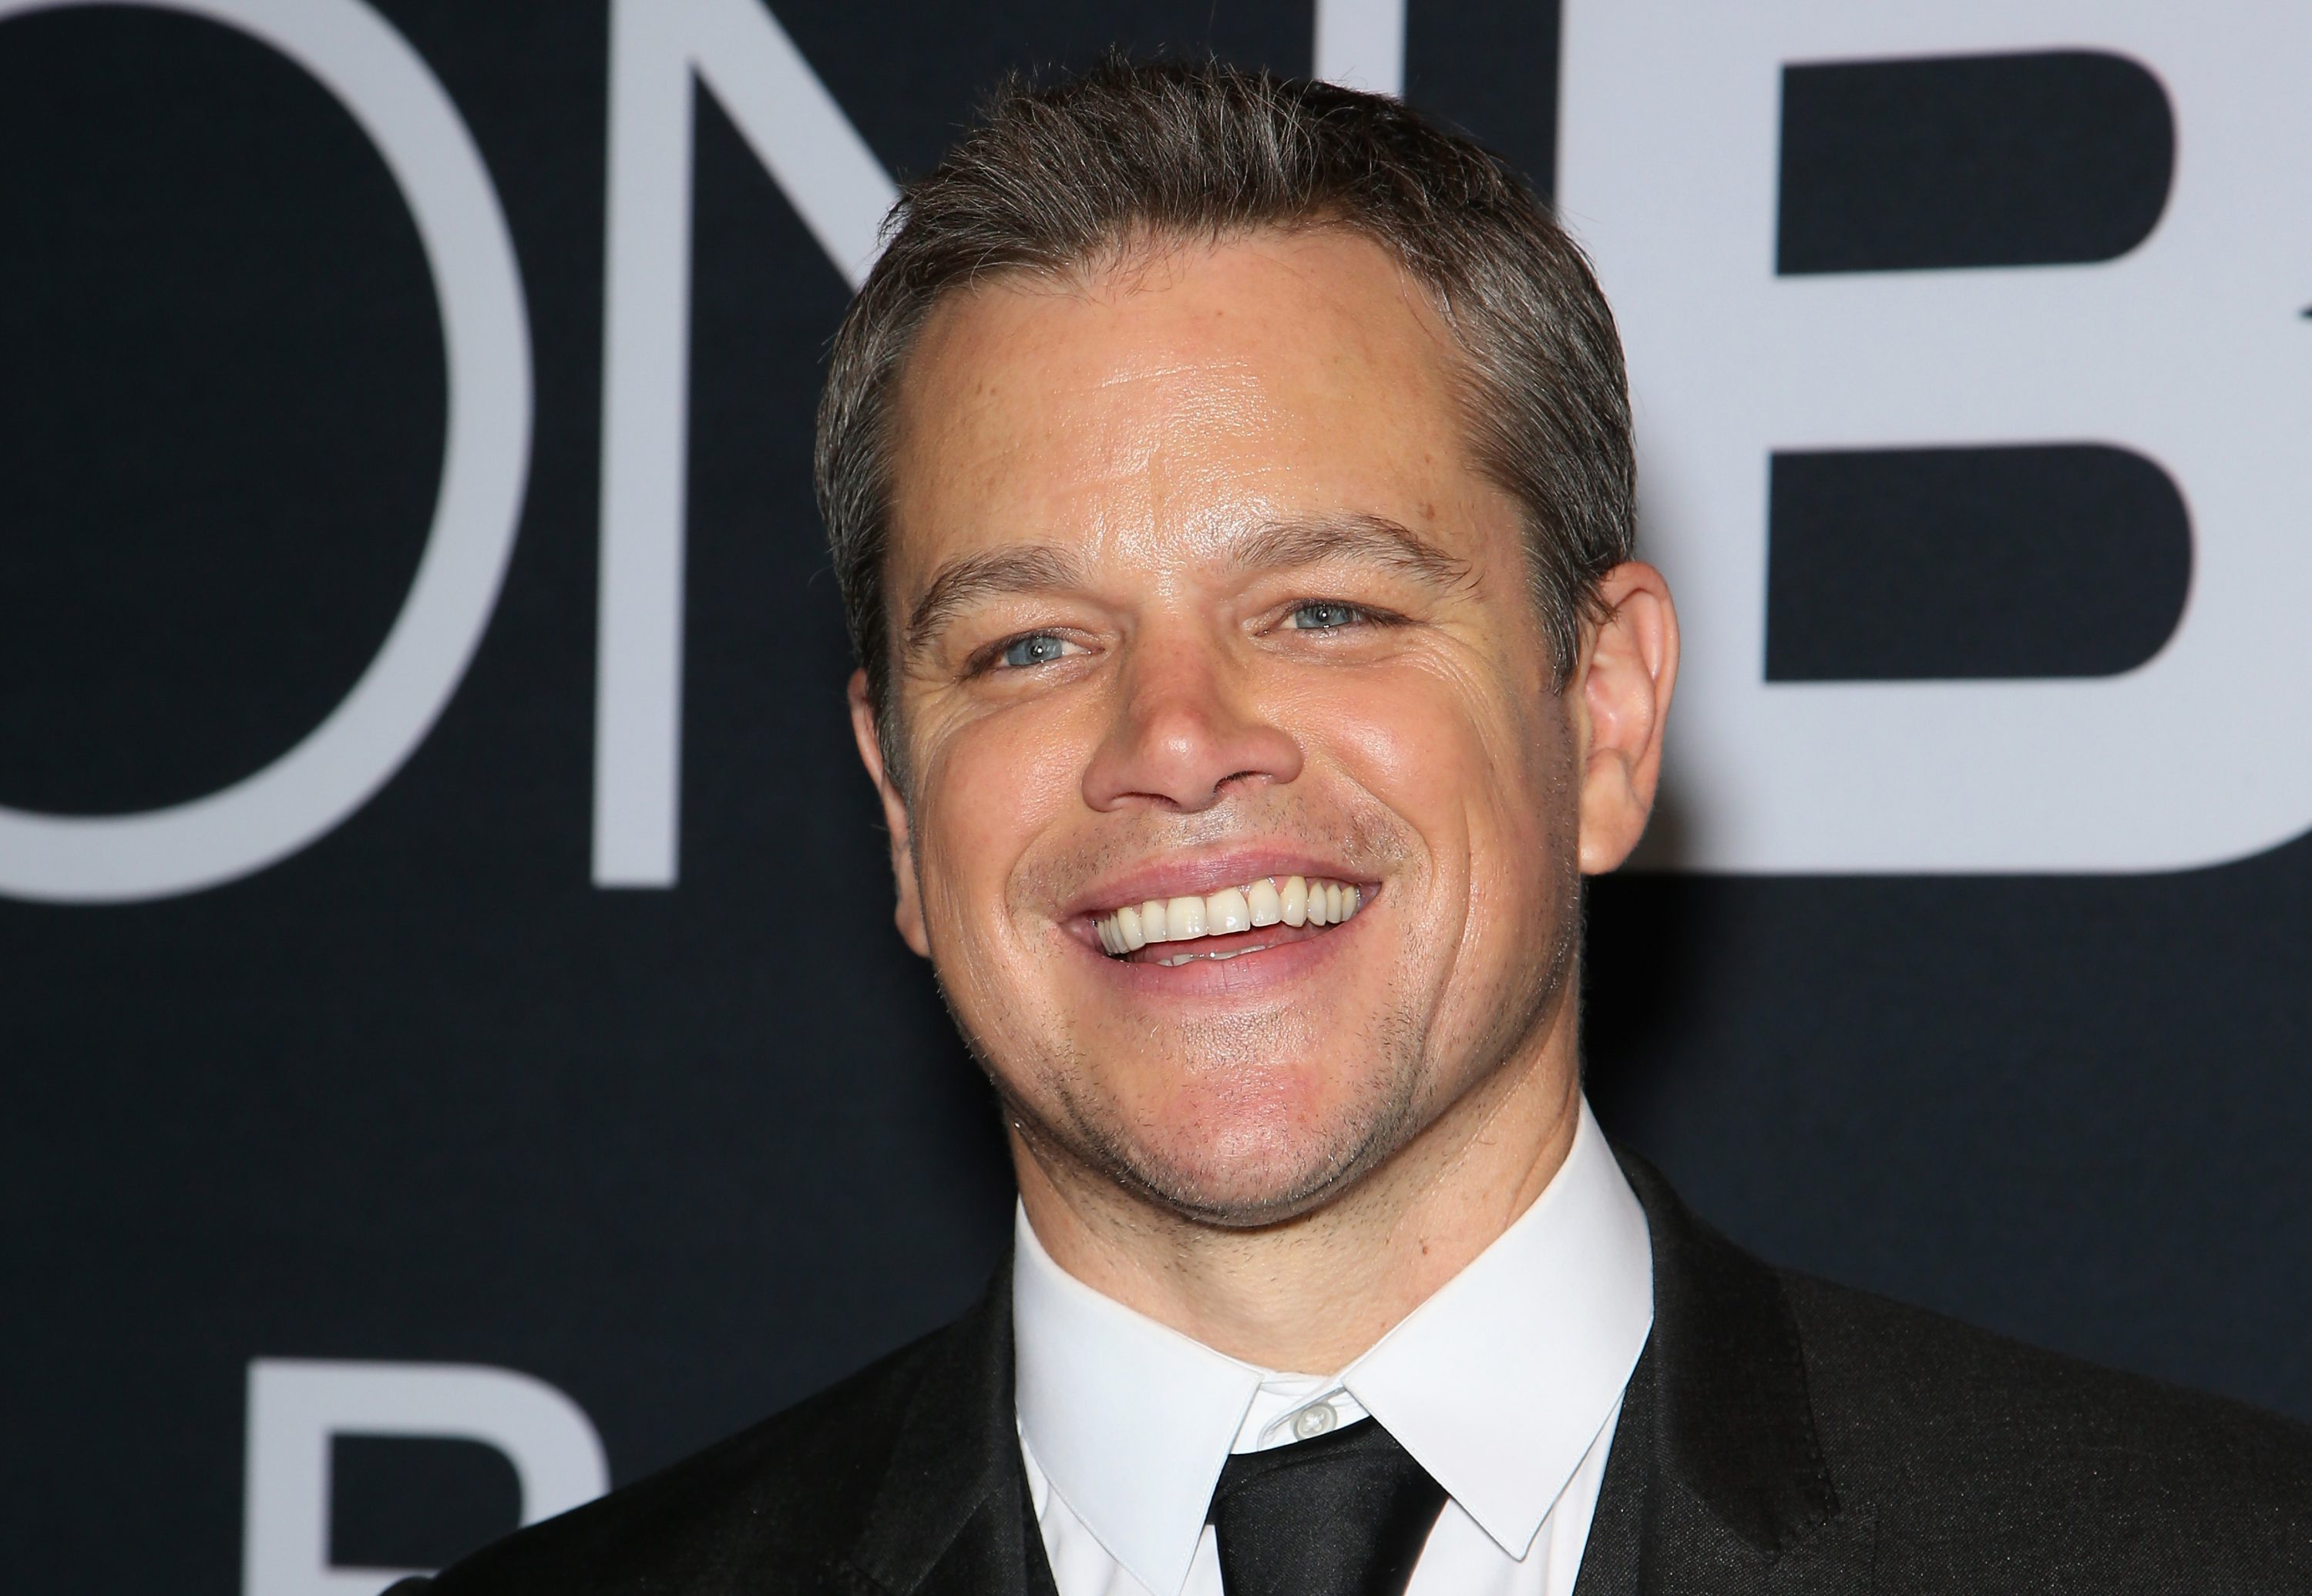 LAS VEGAS, NV - JULY 18:  Actor Matt Damon attends the premiere of Universal Pictures'  Jason Bourne  at The Colosseum at Caesars Palace on July 18, 2016 in Las Vegas, Nevada.  (Photo by Gabe Ginsberg/FilmMagic)